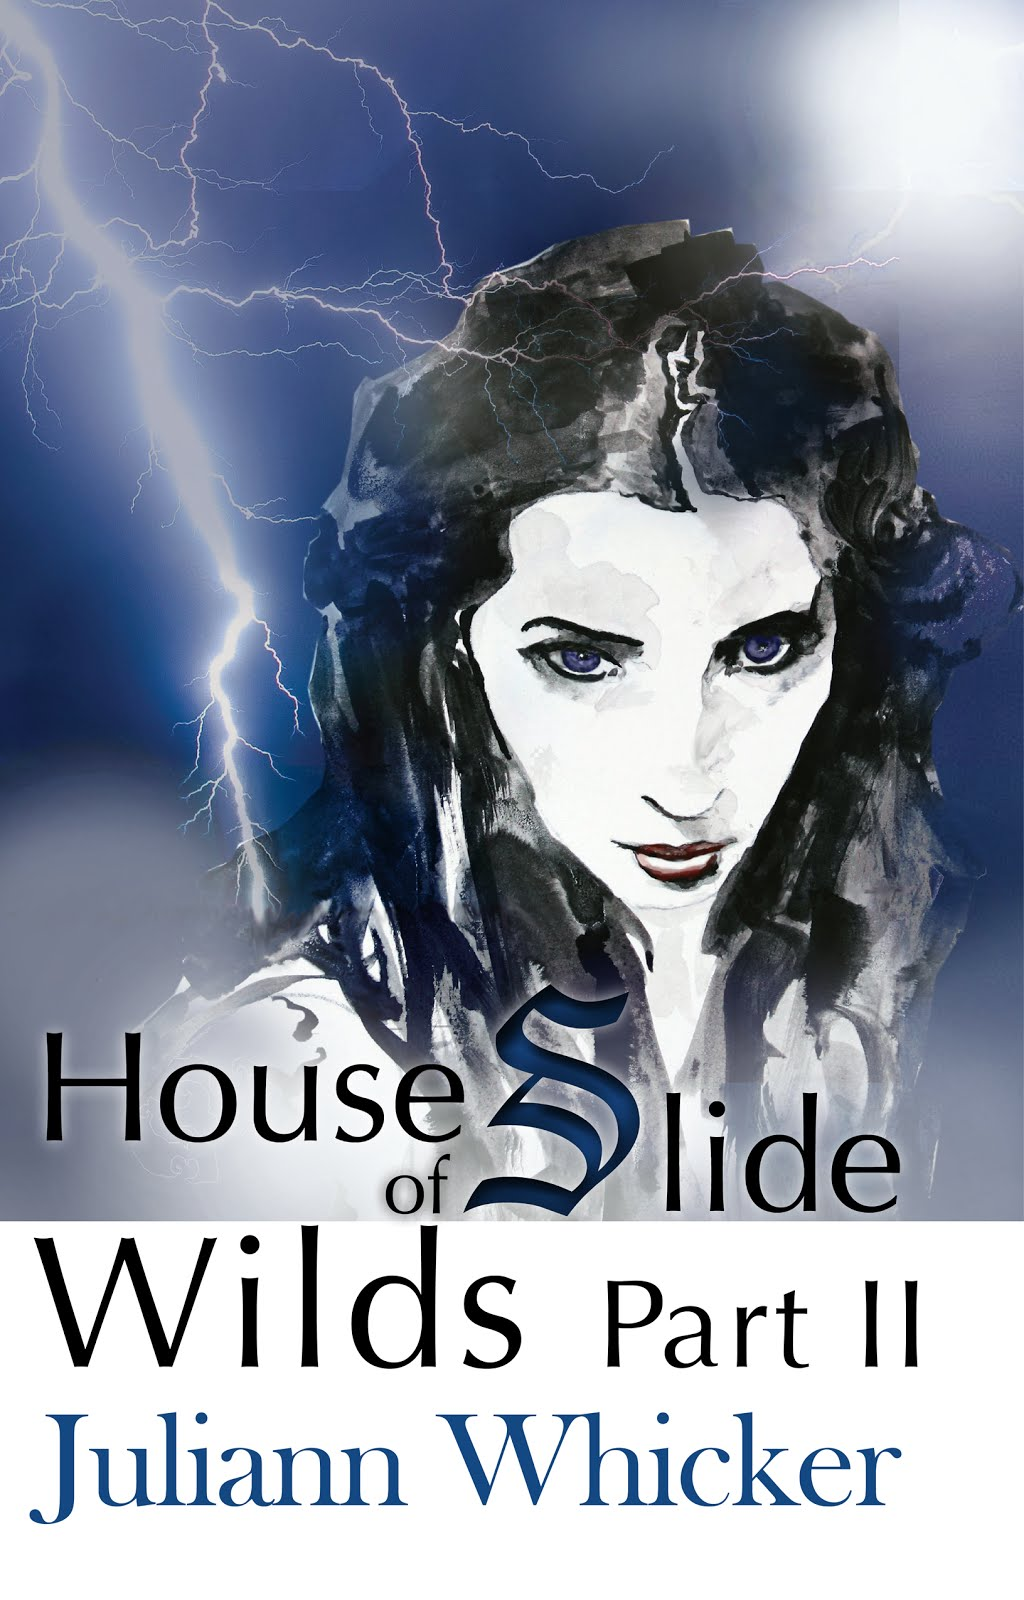 House of Slide: Wilds